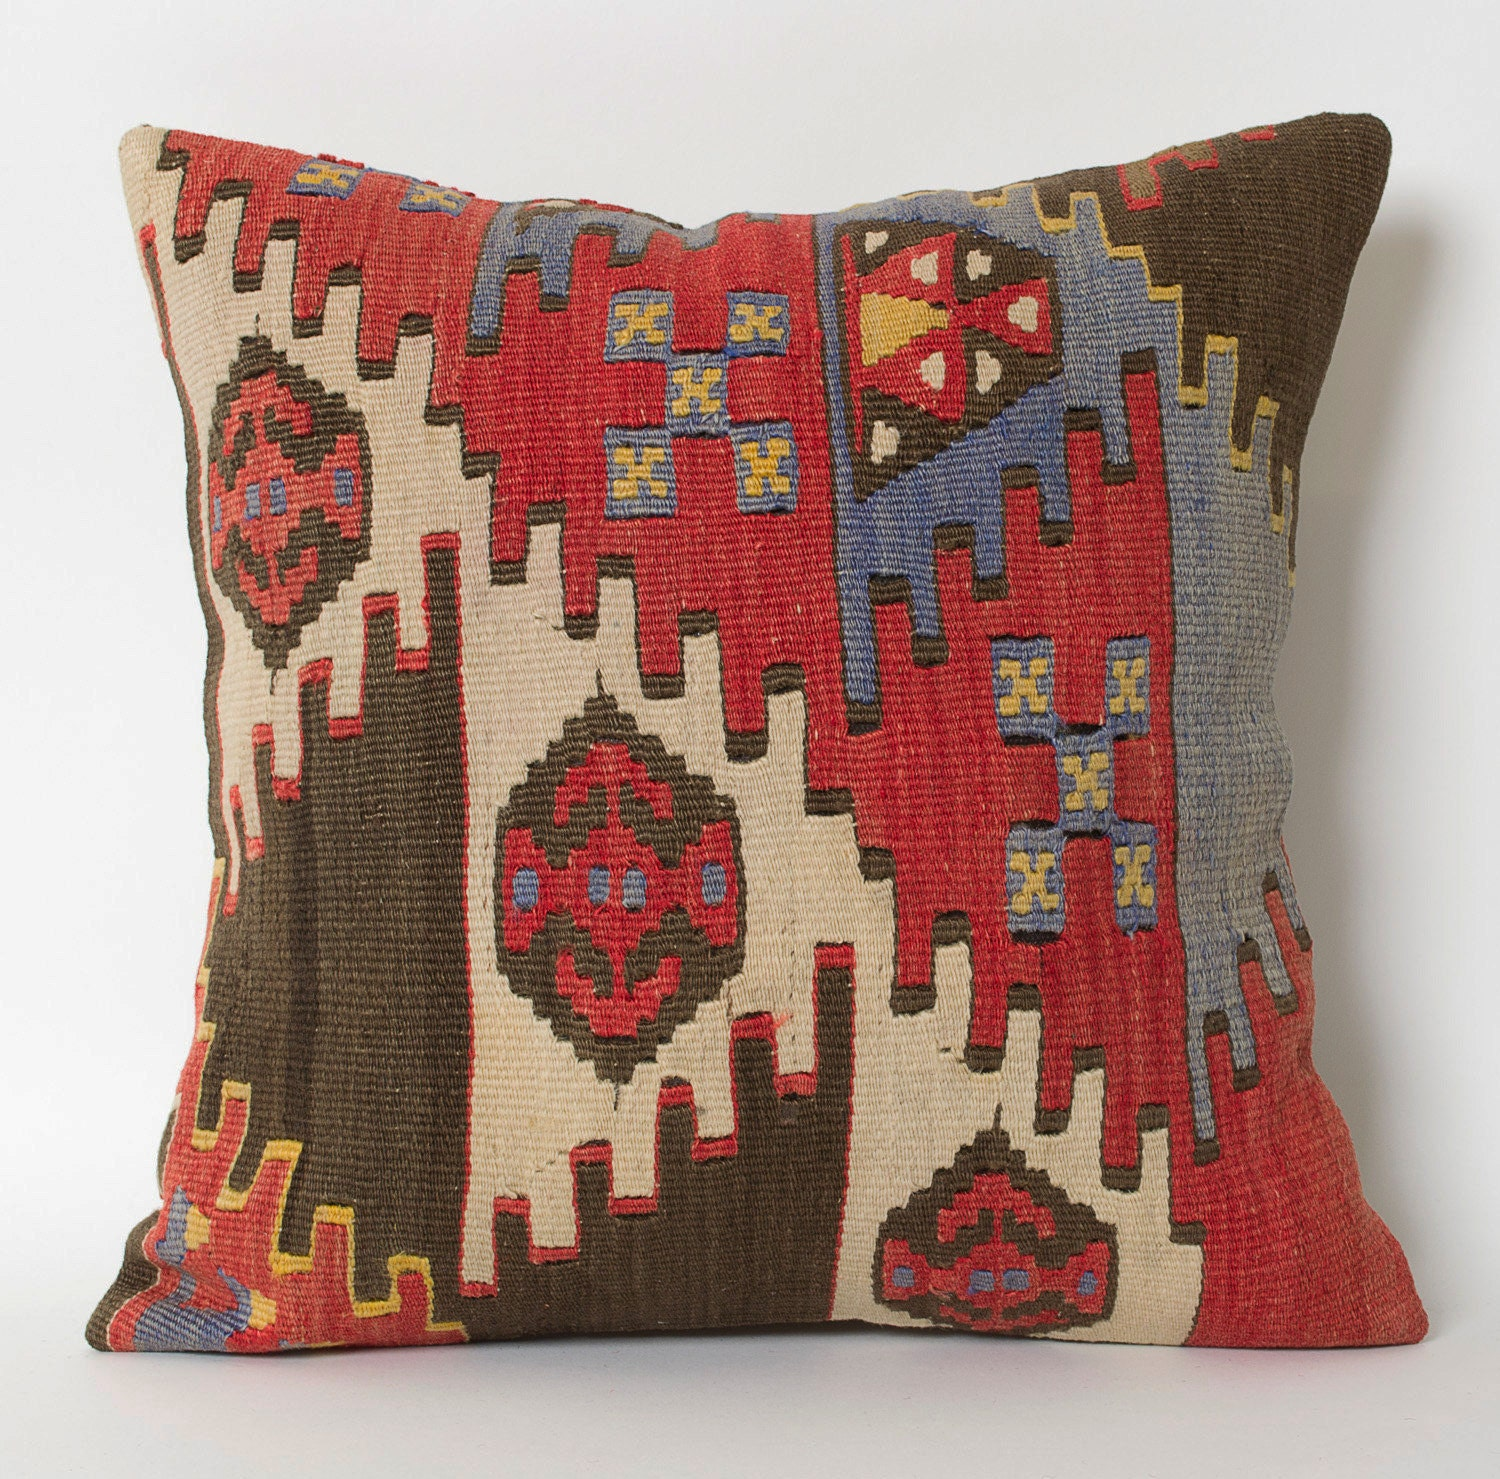 Vintage Kilim Pillow Cover Hand Woven Tribal Decorative